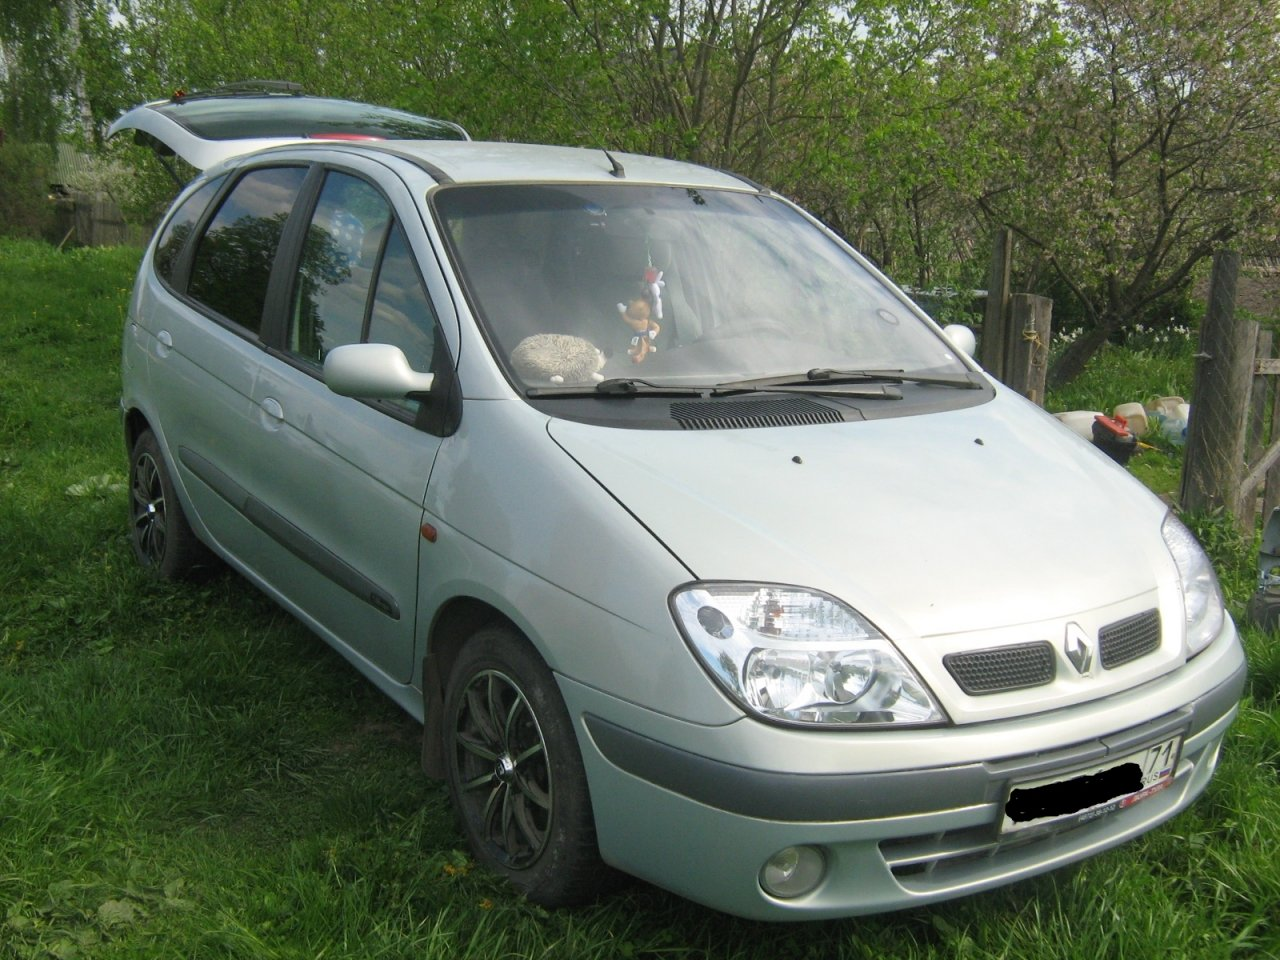 2002 Renault Scenic (ja) – pictures, information and specs - Auto-Database.com